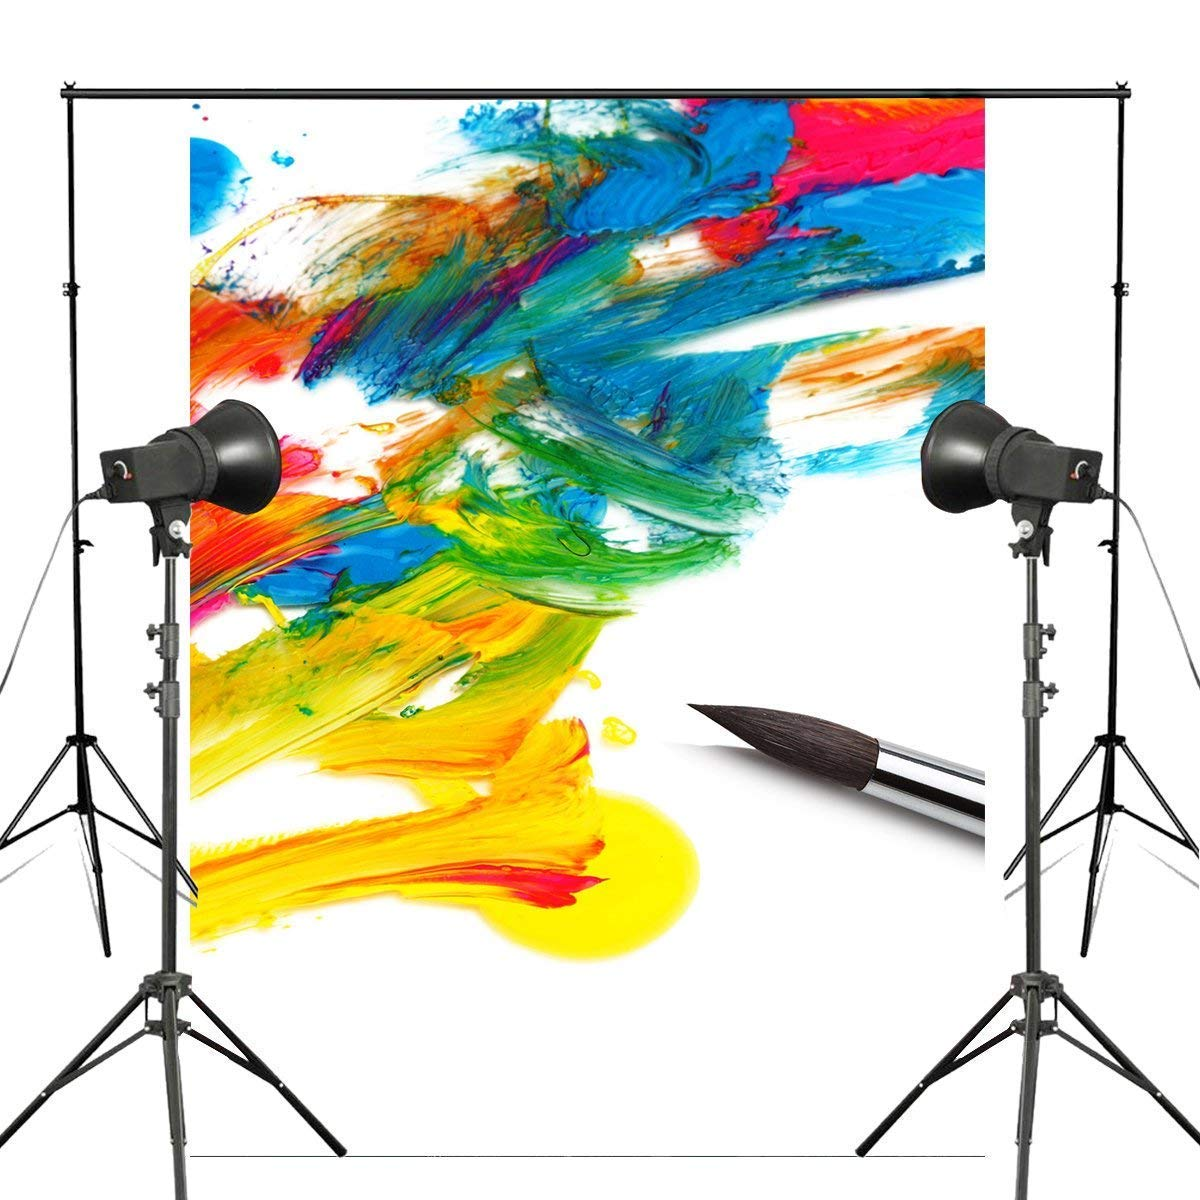 ERTIANANG 5x7ft Colorful Ink Painting Photography Backdrop Brush Background Art Photo Studio Backdrop